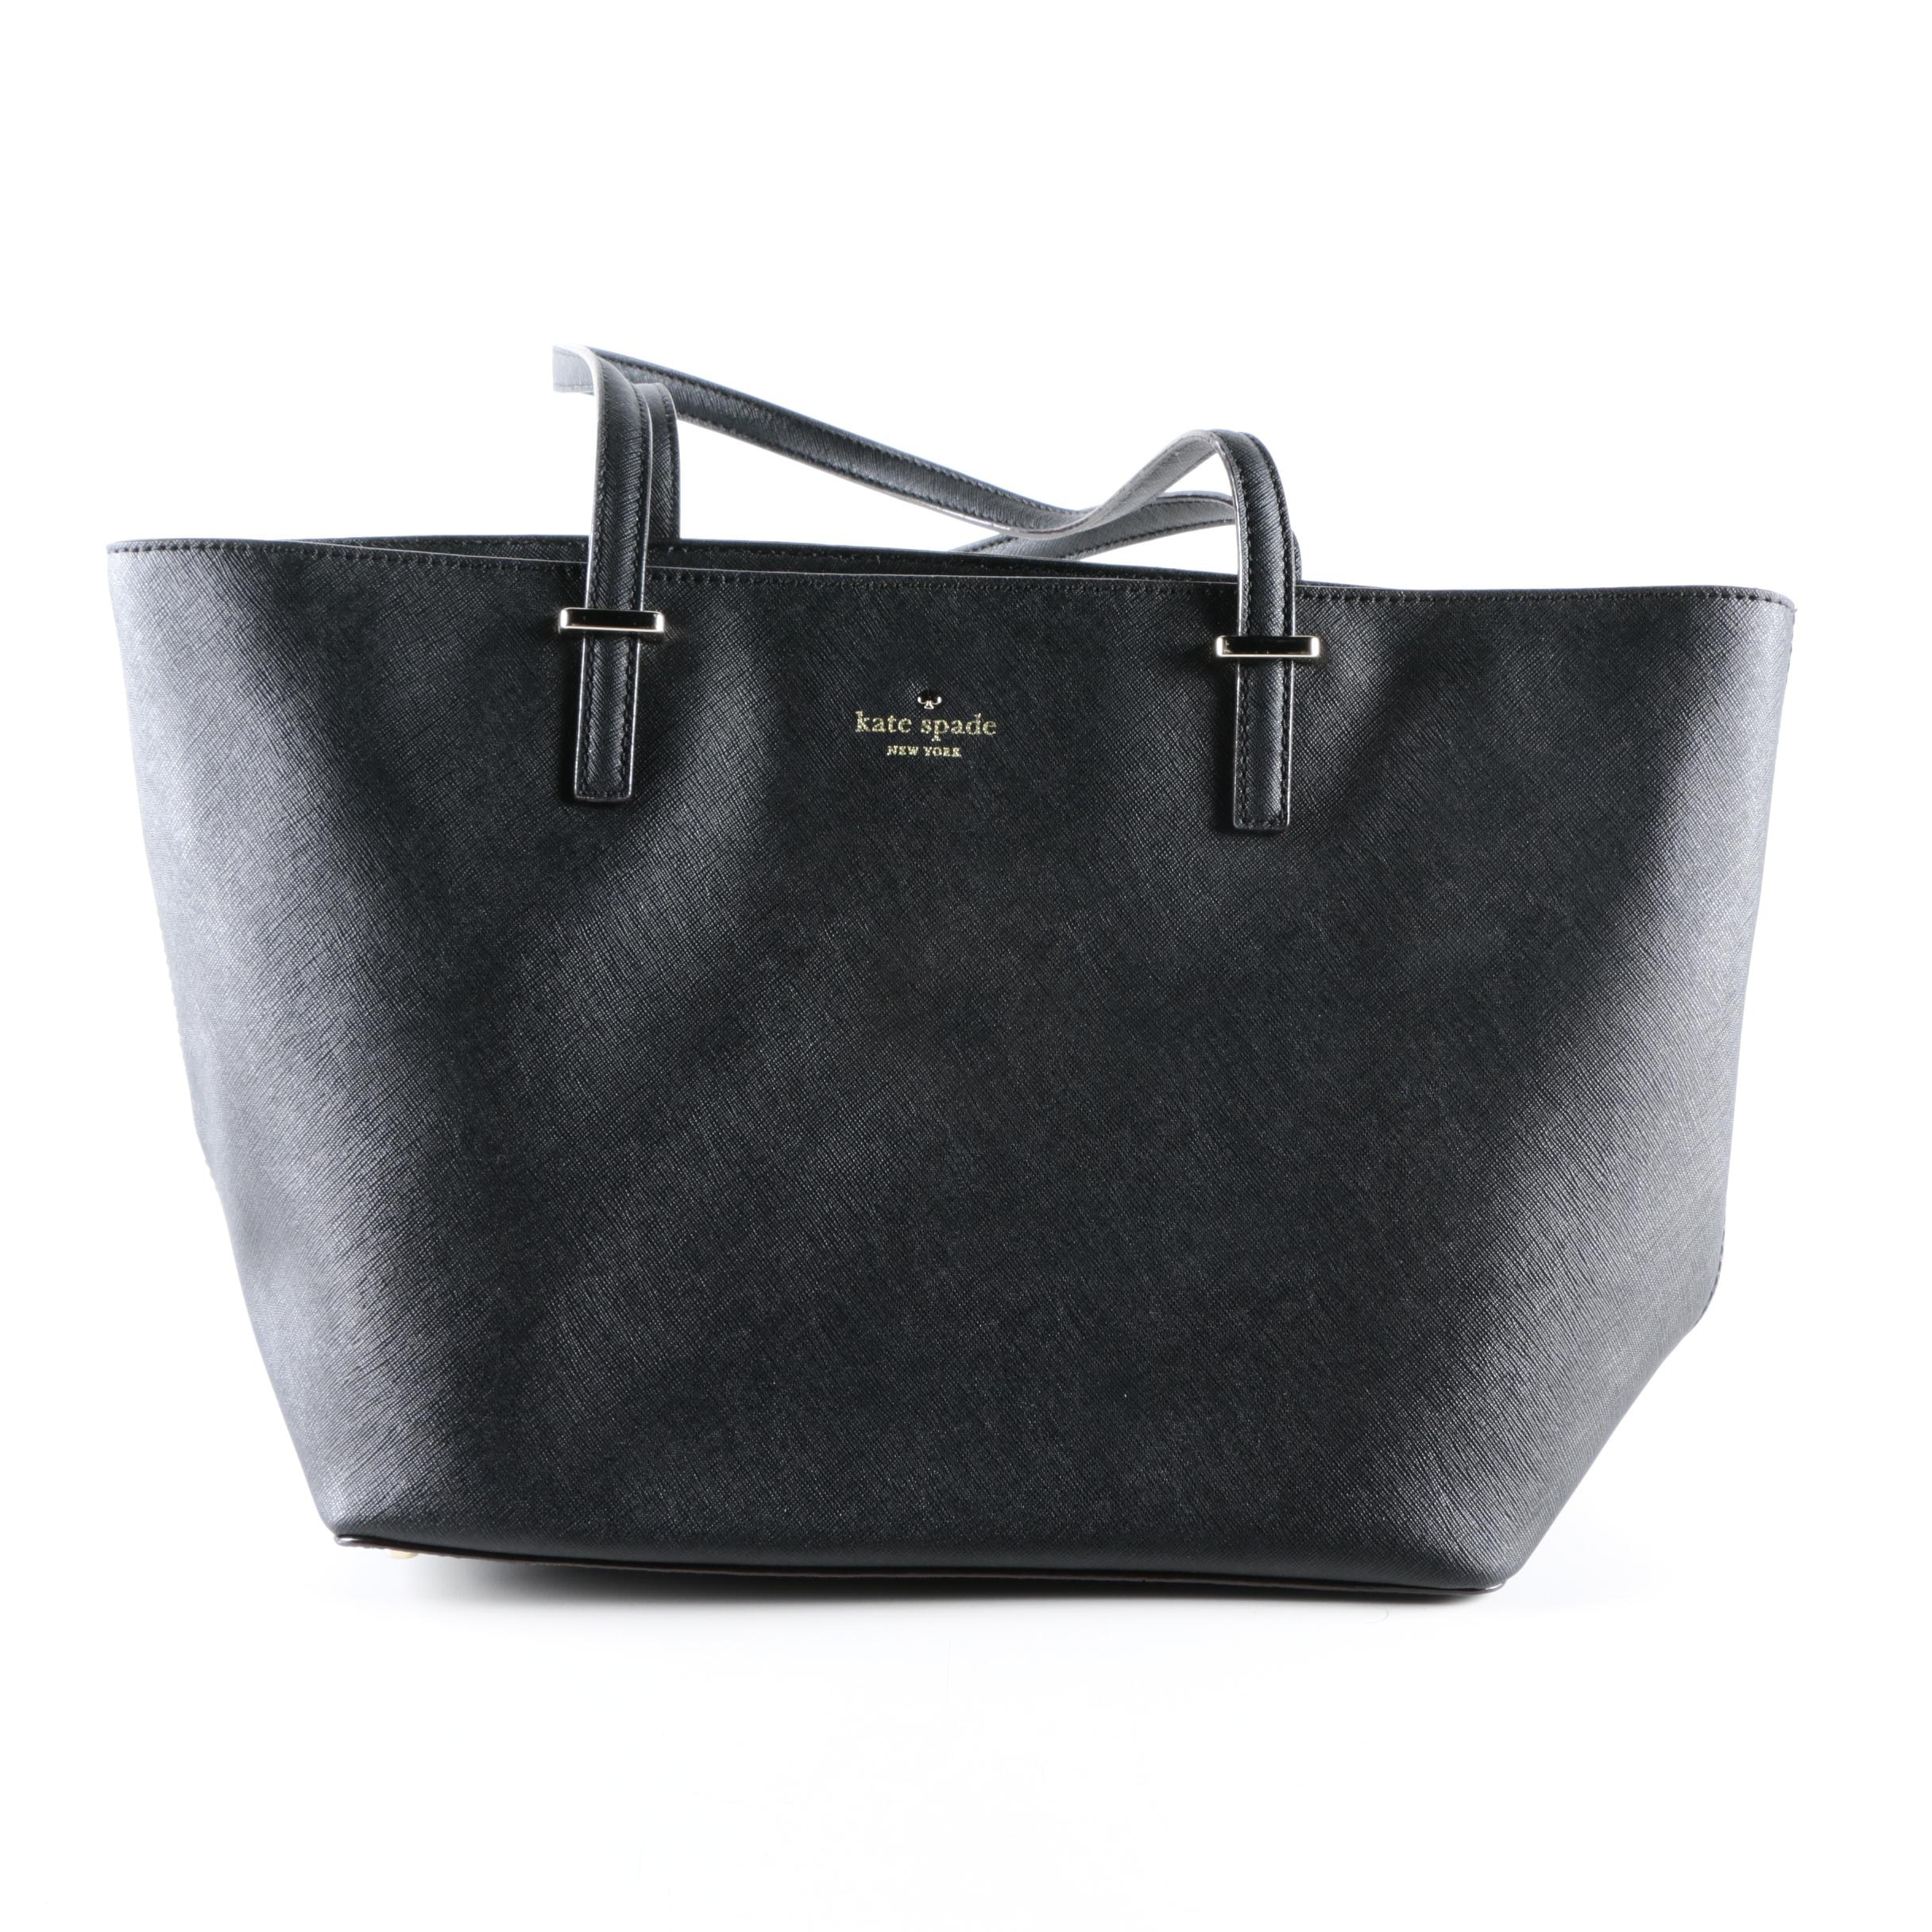 Kate Spade New York Black Leather Bag